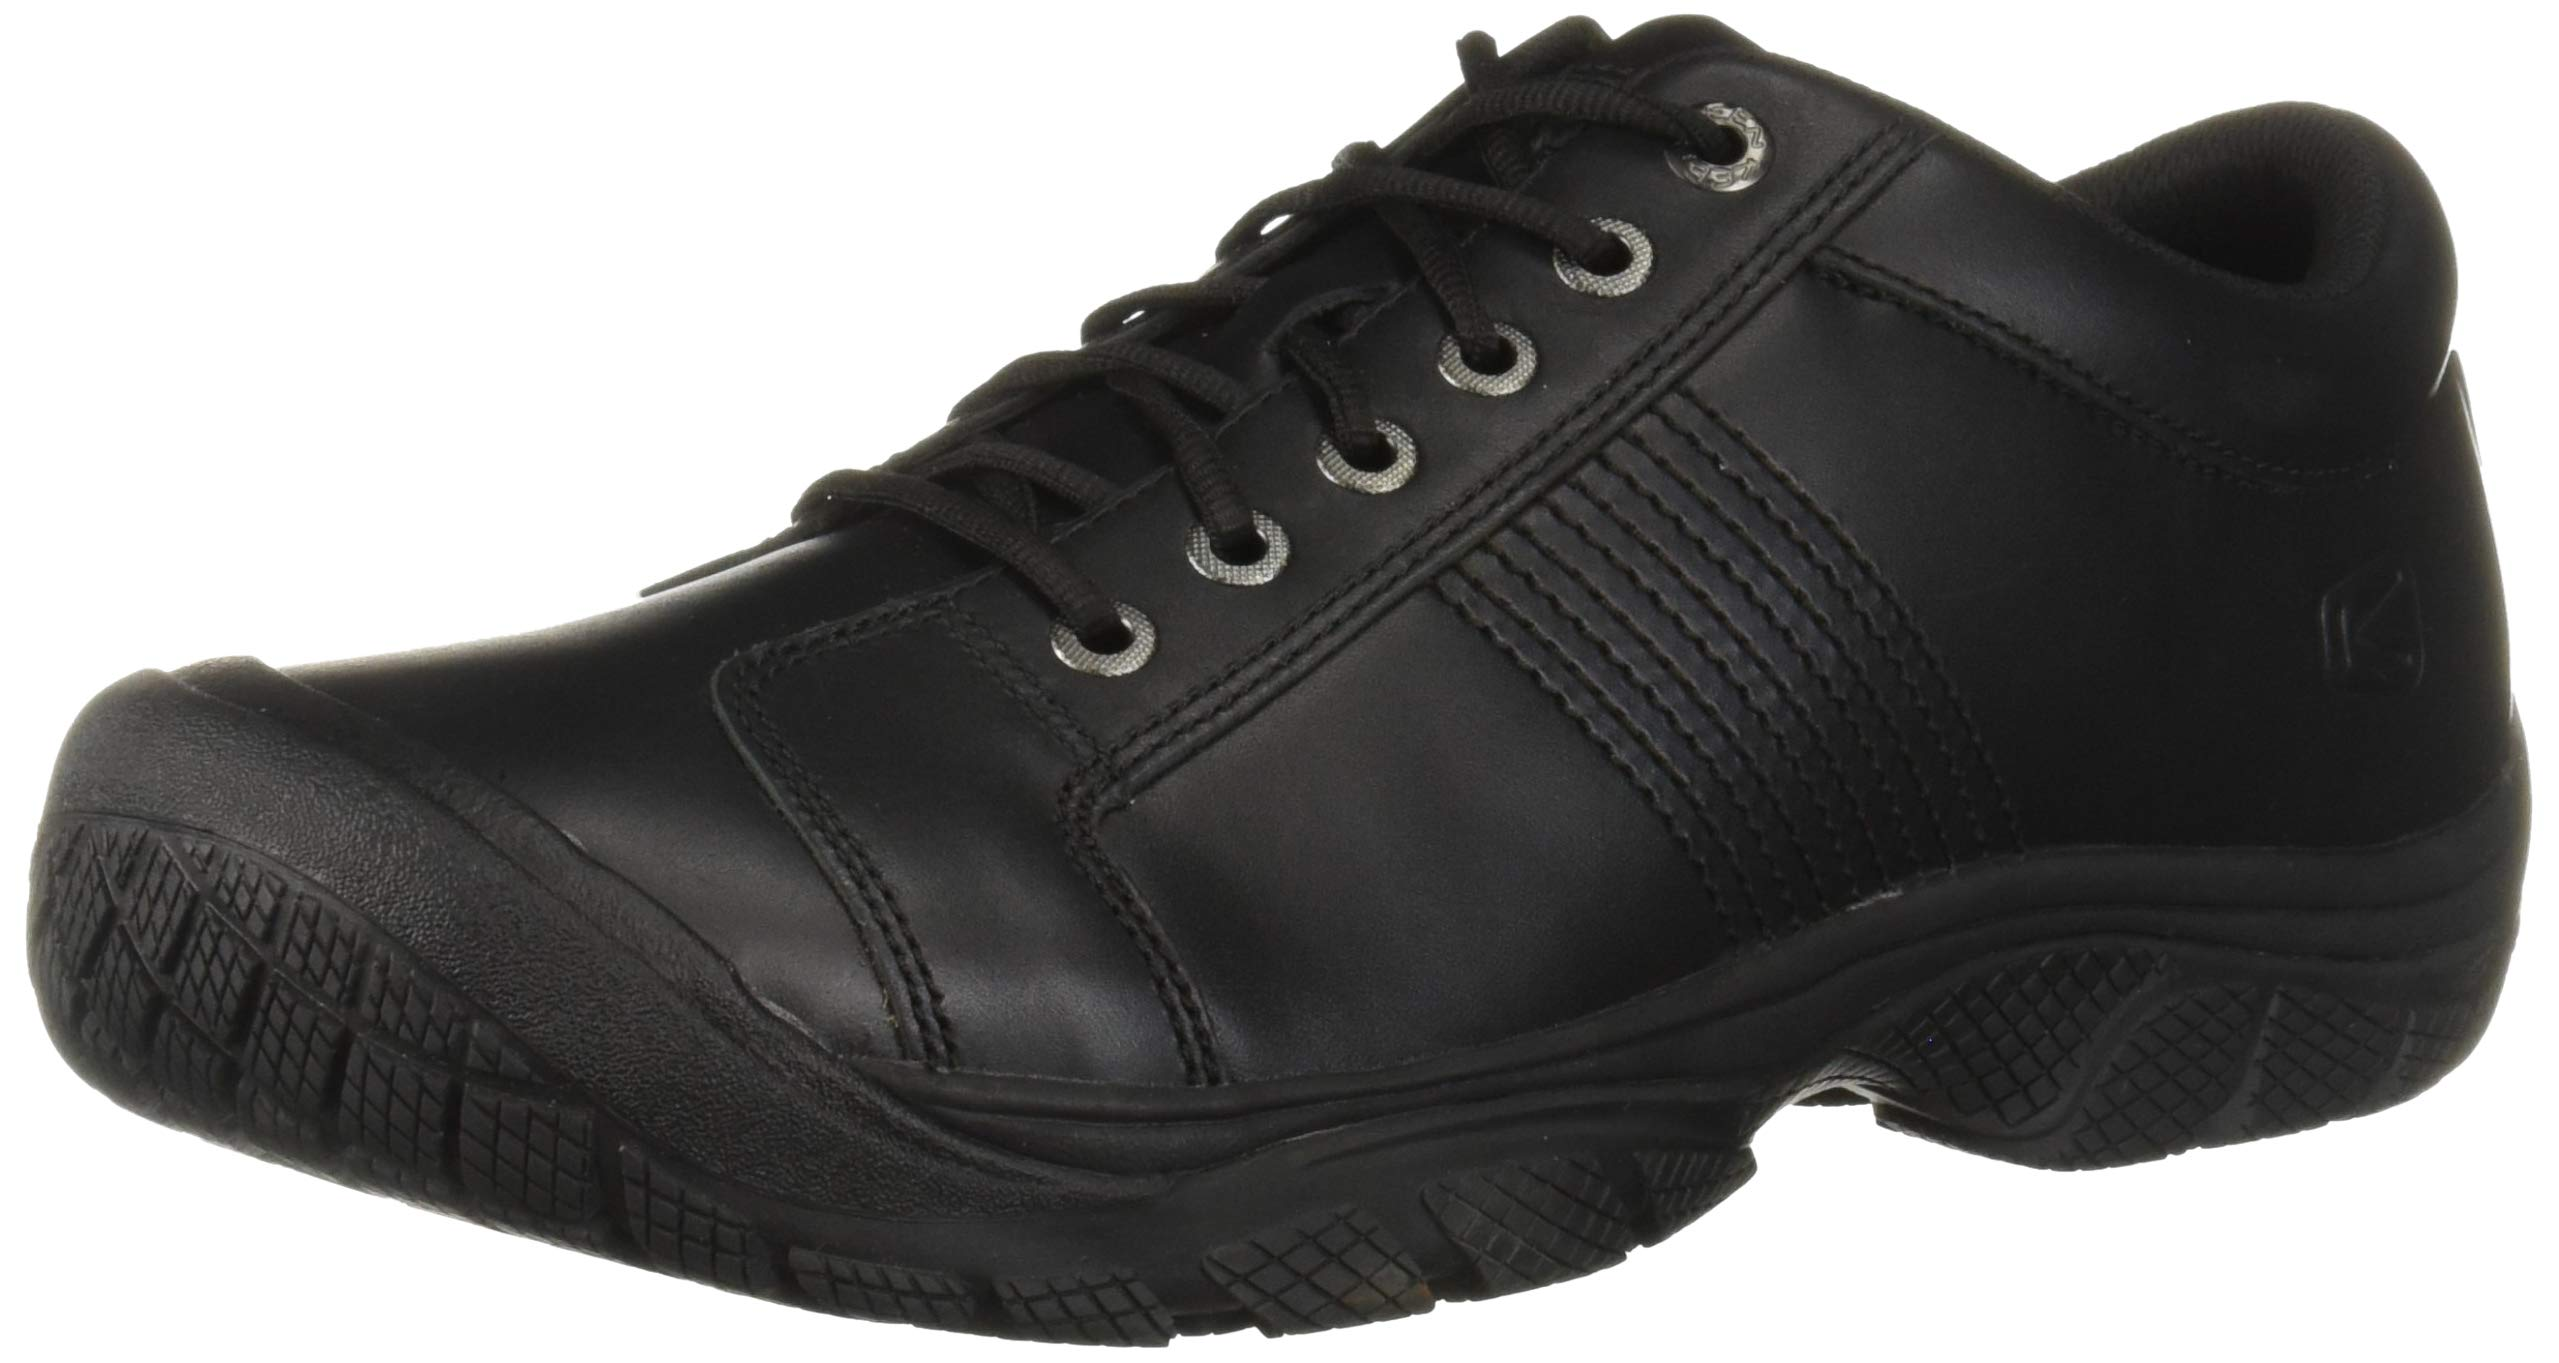 KEEN Utility Men's PTC Oxford Work Shoe,Black,9 M US by KEEN Utility (Image #1)